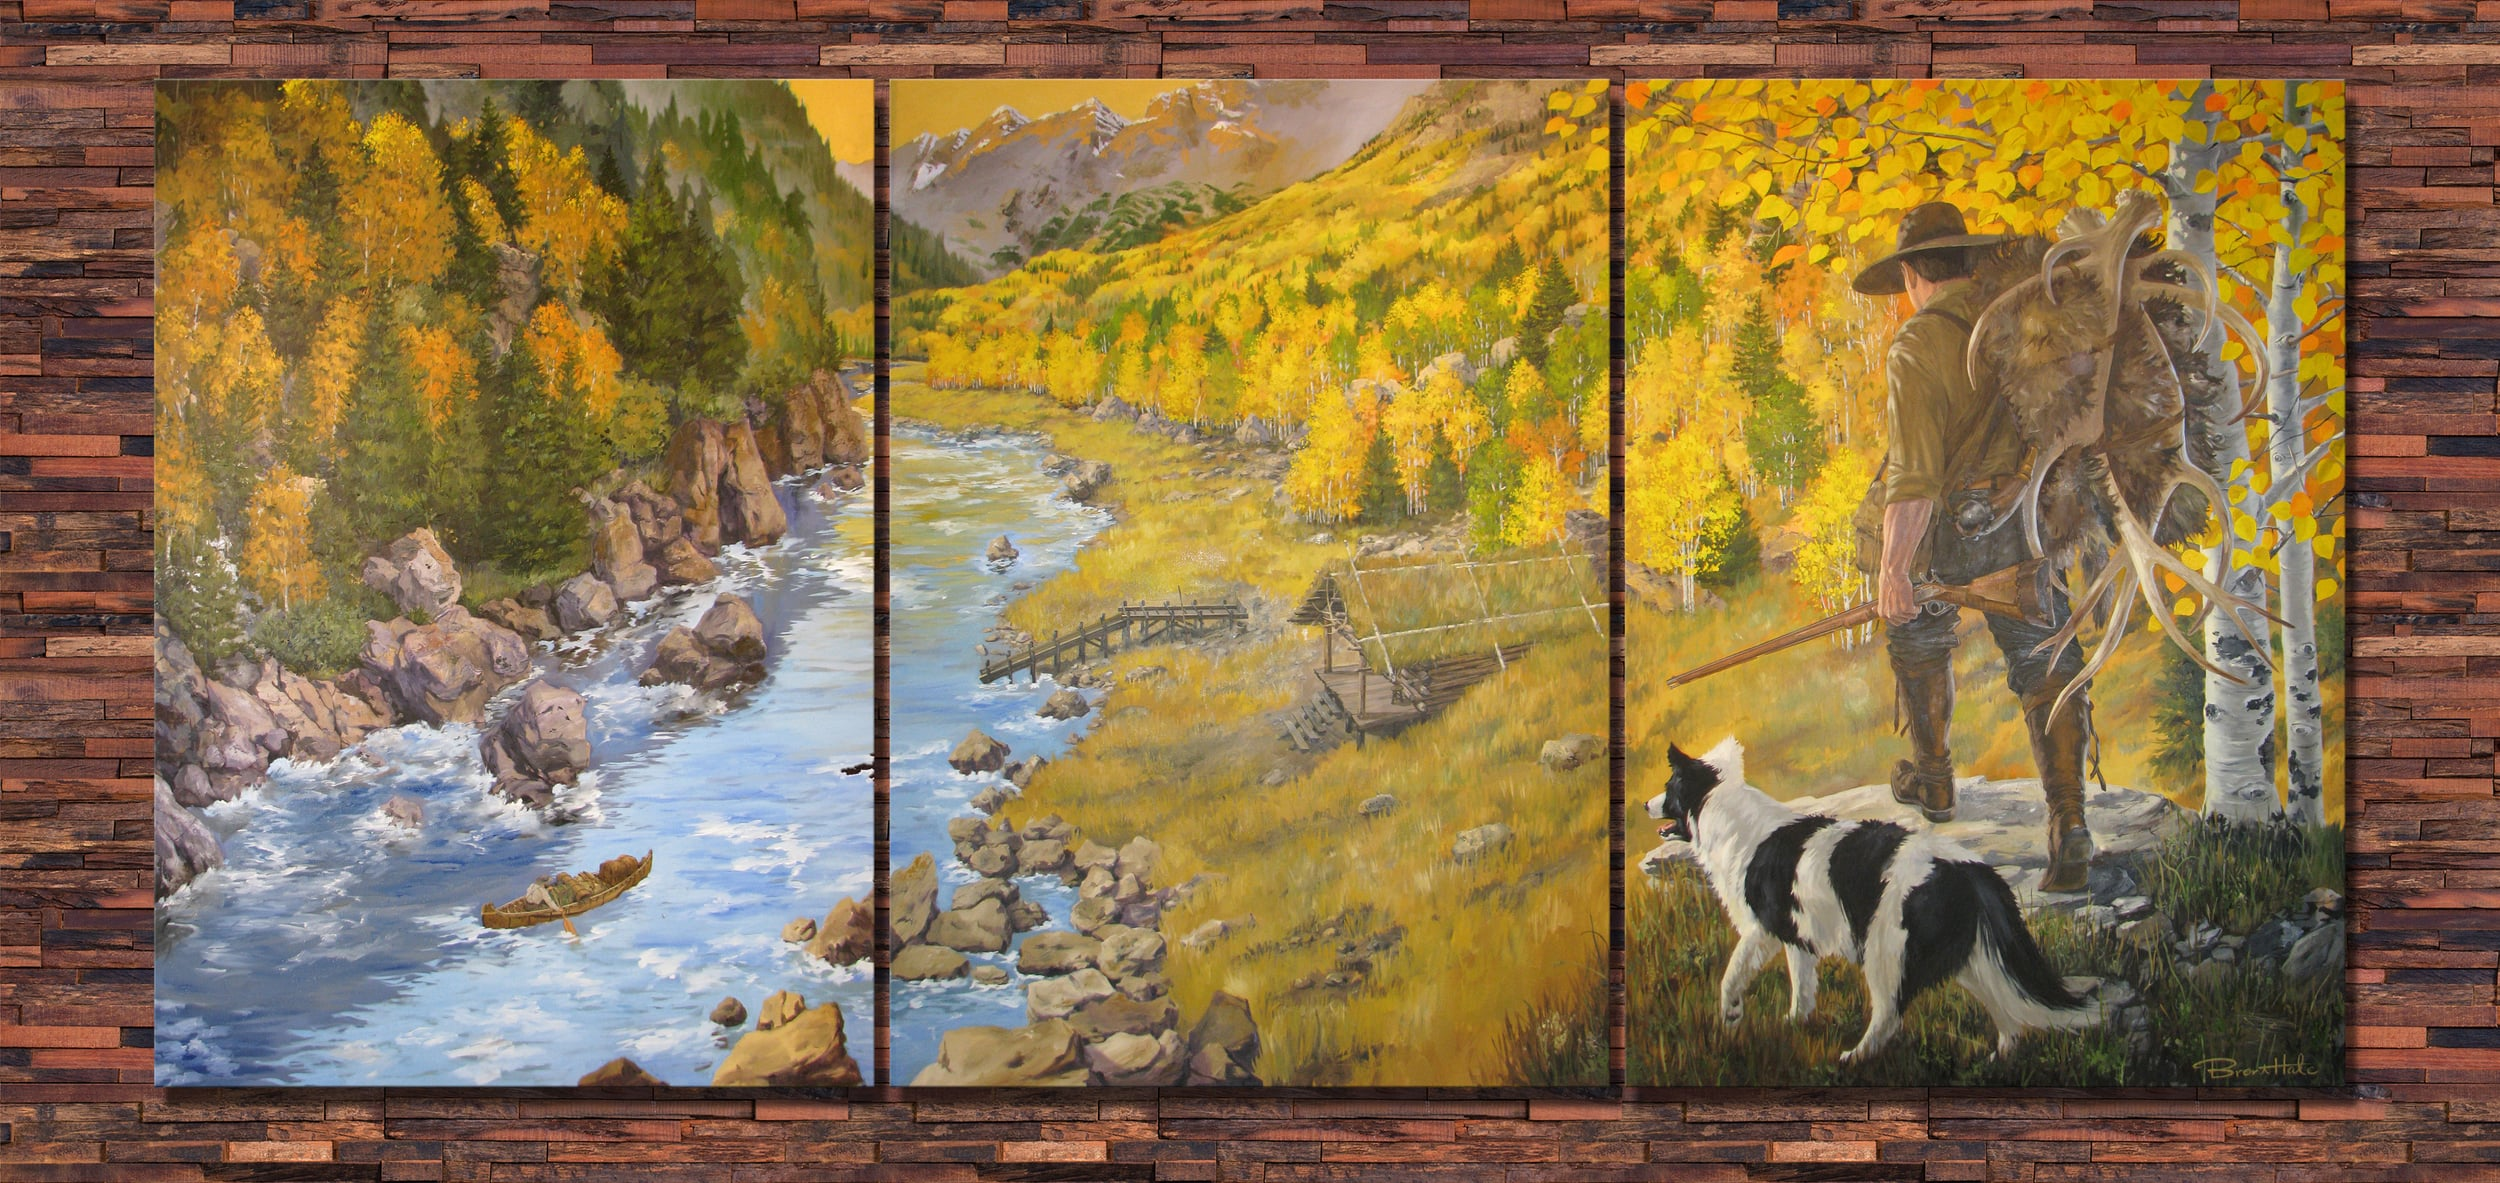 Privately Commissioned Art - Oil on Canvas (7'x15')